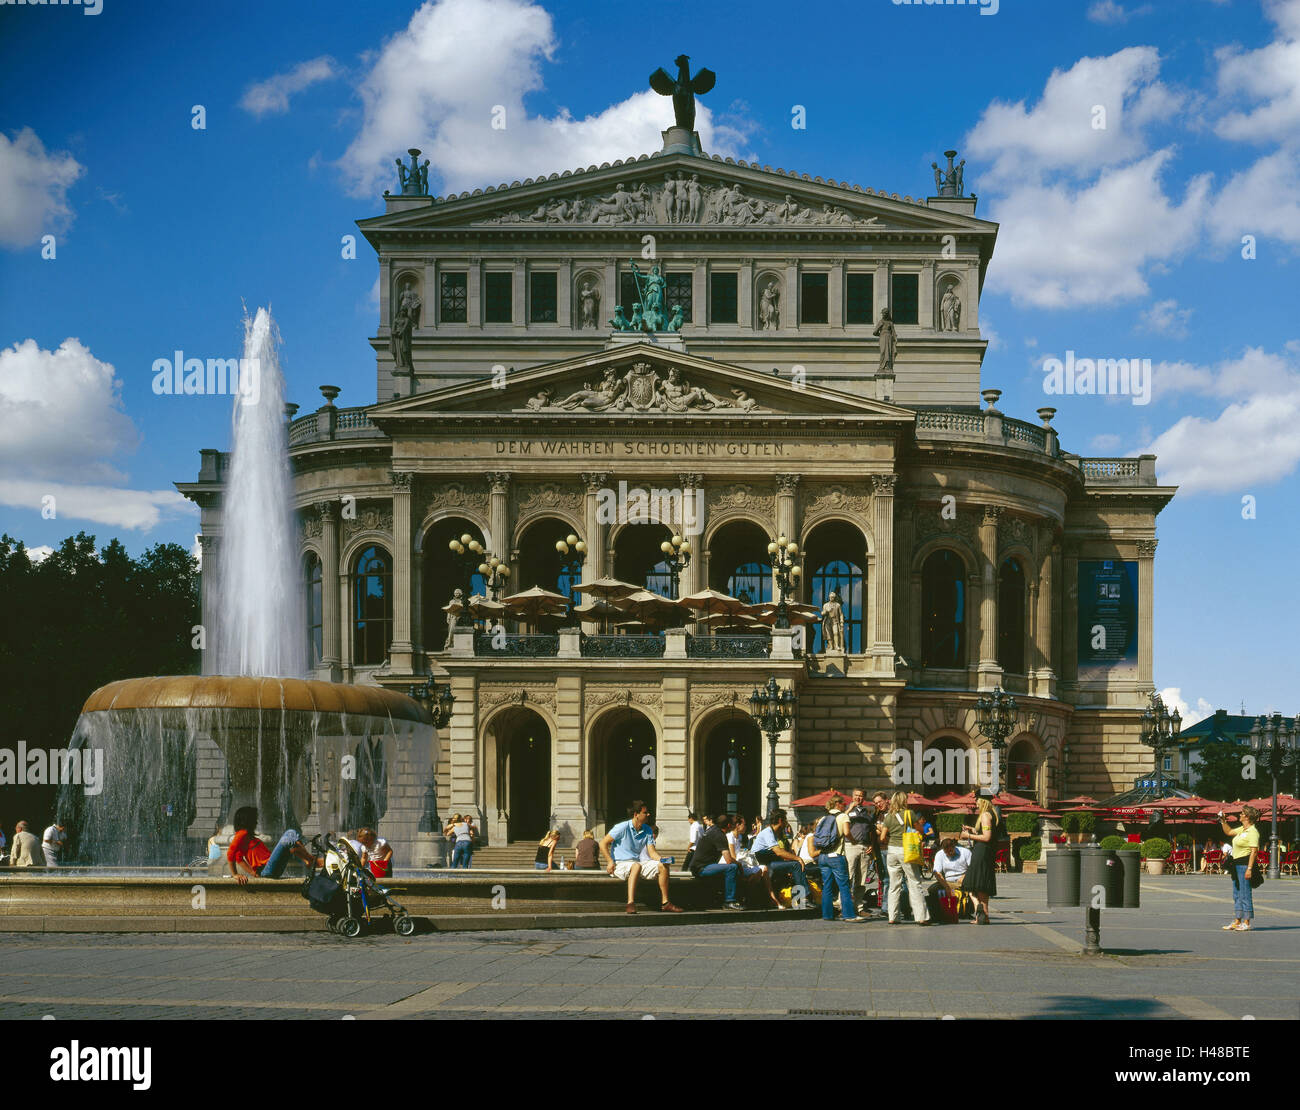 deutschland hessen frankfurt am main alte oper brunnen tourist metropole opernhaus oper. Black Bedroom Furniture Sets. Home Design Ideas